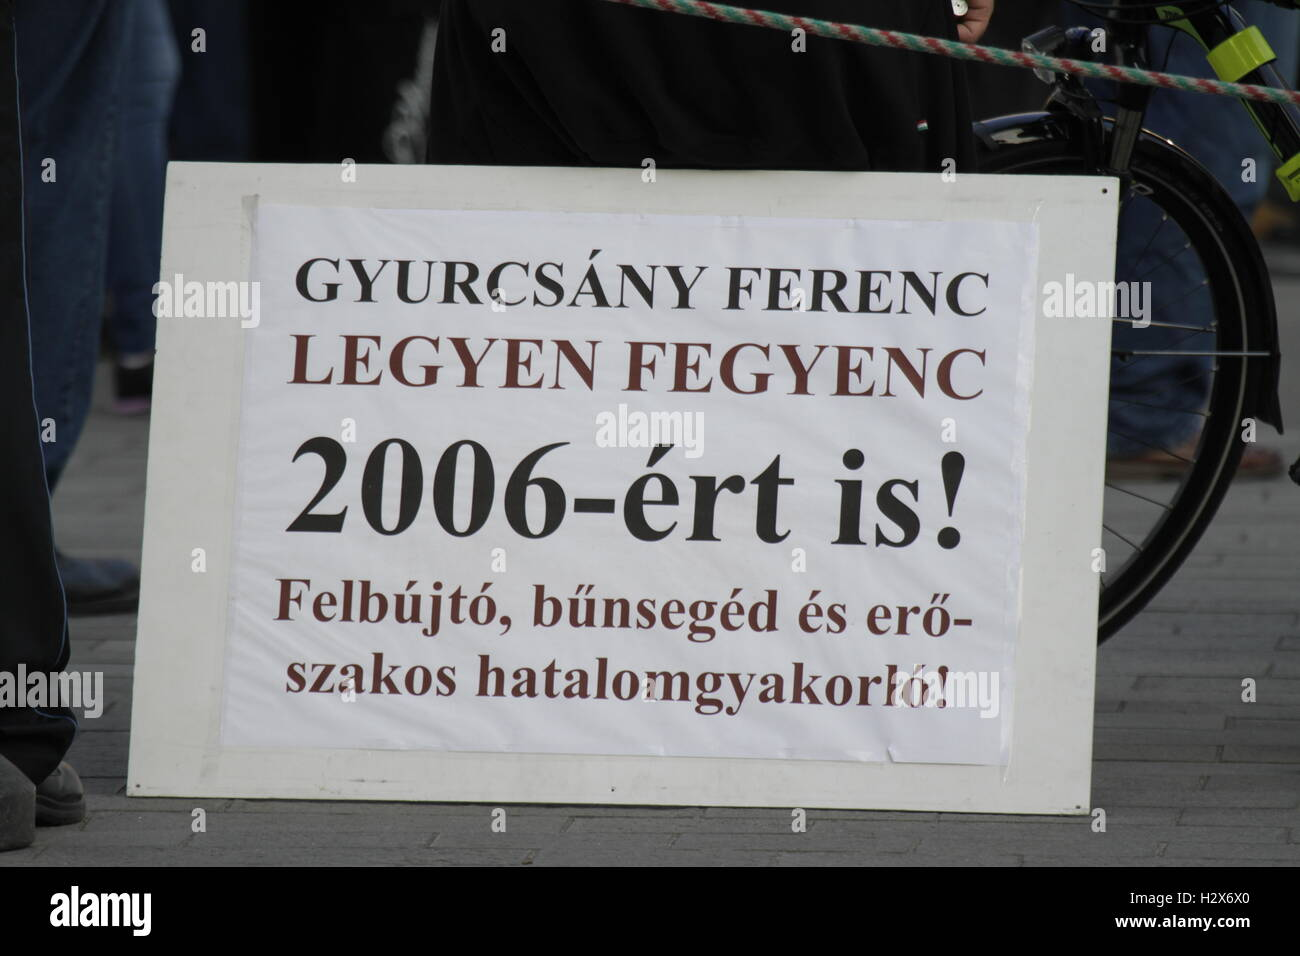 A sign stands on the ground, calling for a conviction of the Democratic Coalition party leader Ferenc Gyurcsany. Stock Photo